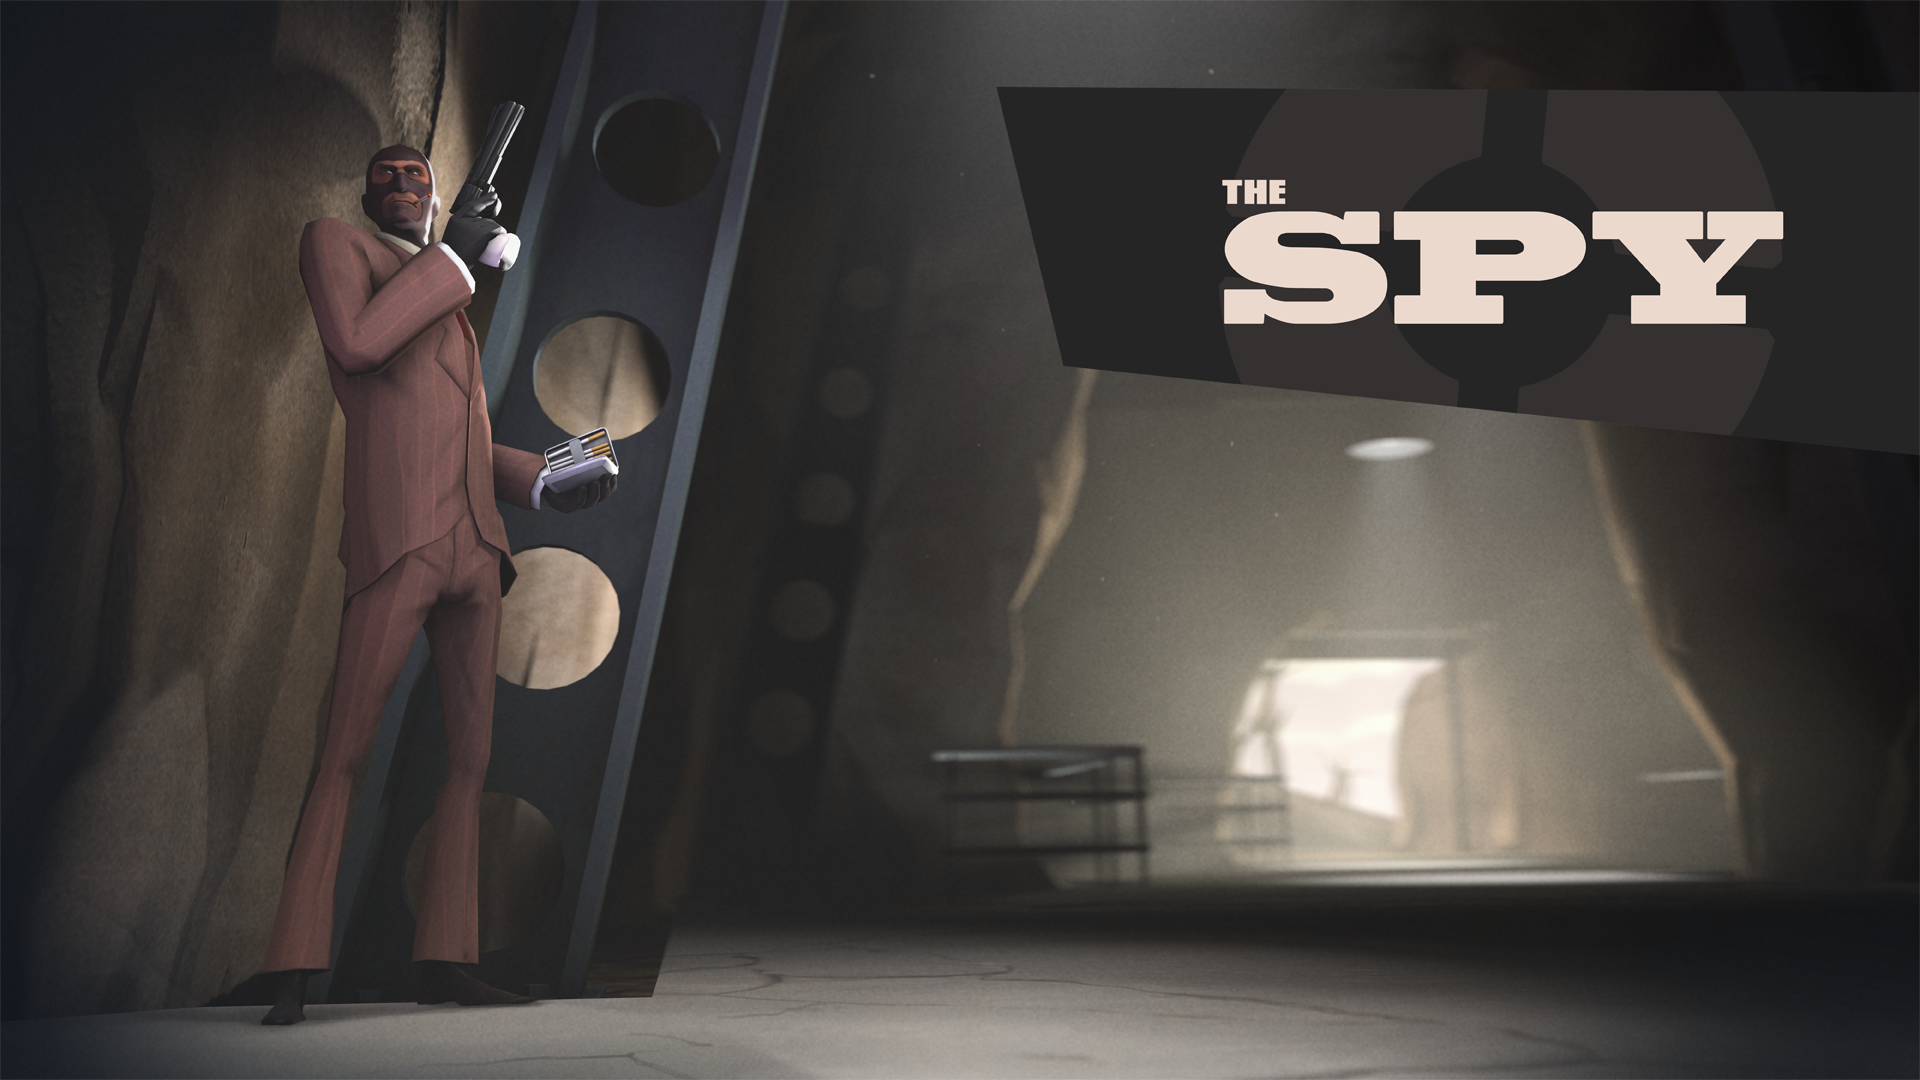 new tf2 wallpapersbackgrounds   Steam Users Forums 1920x1080